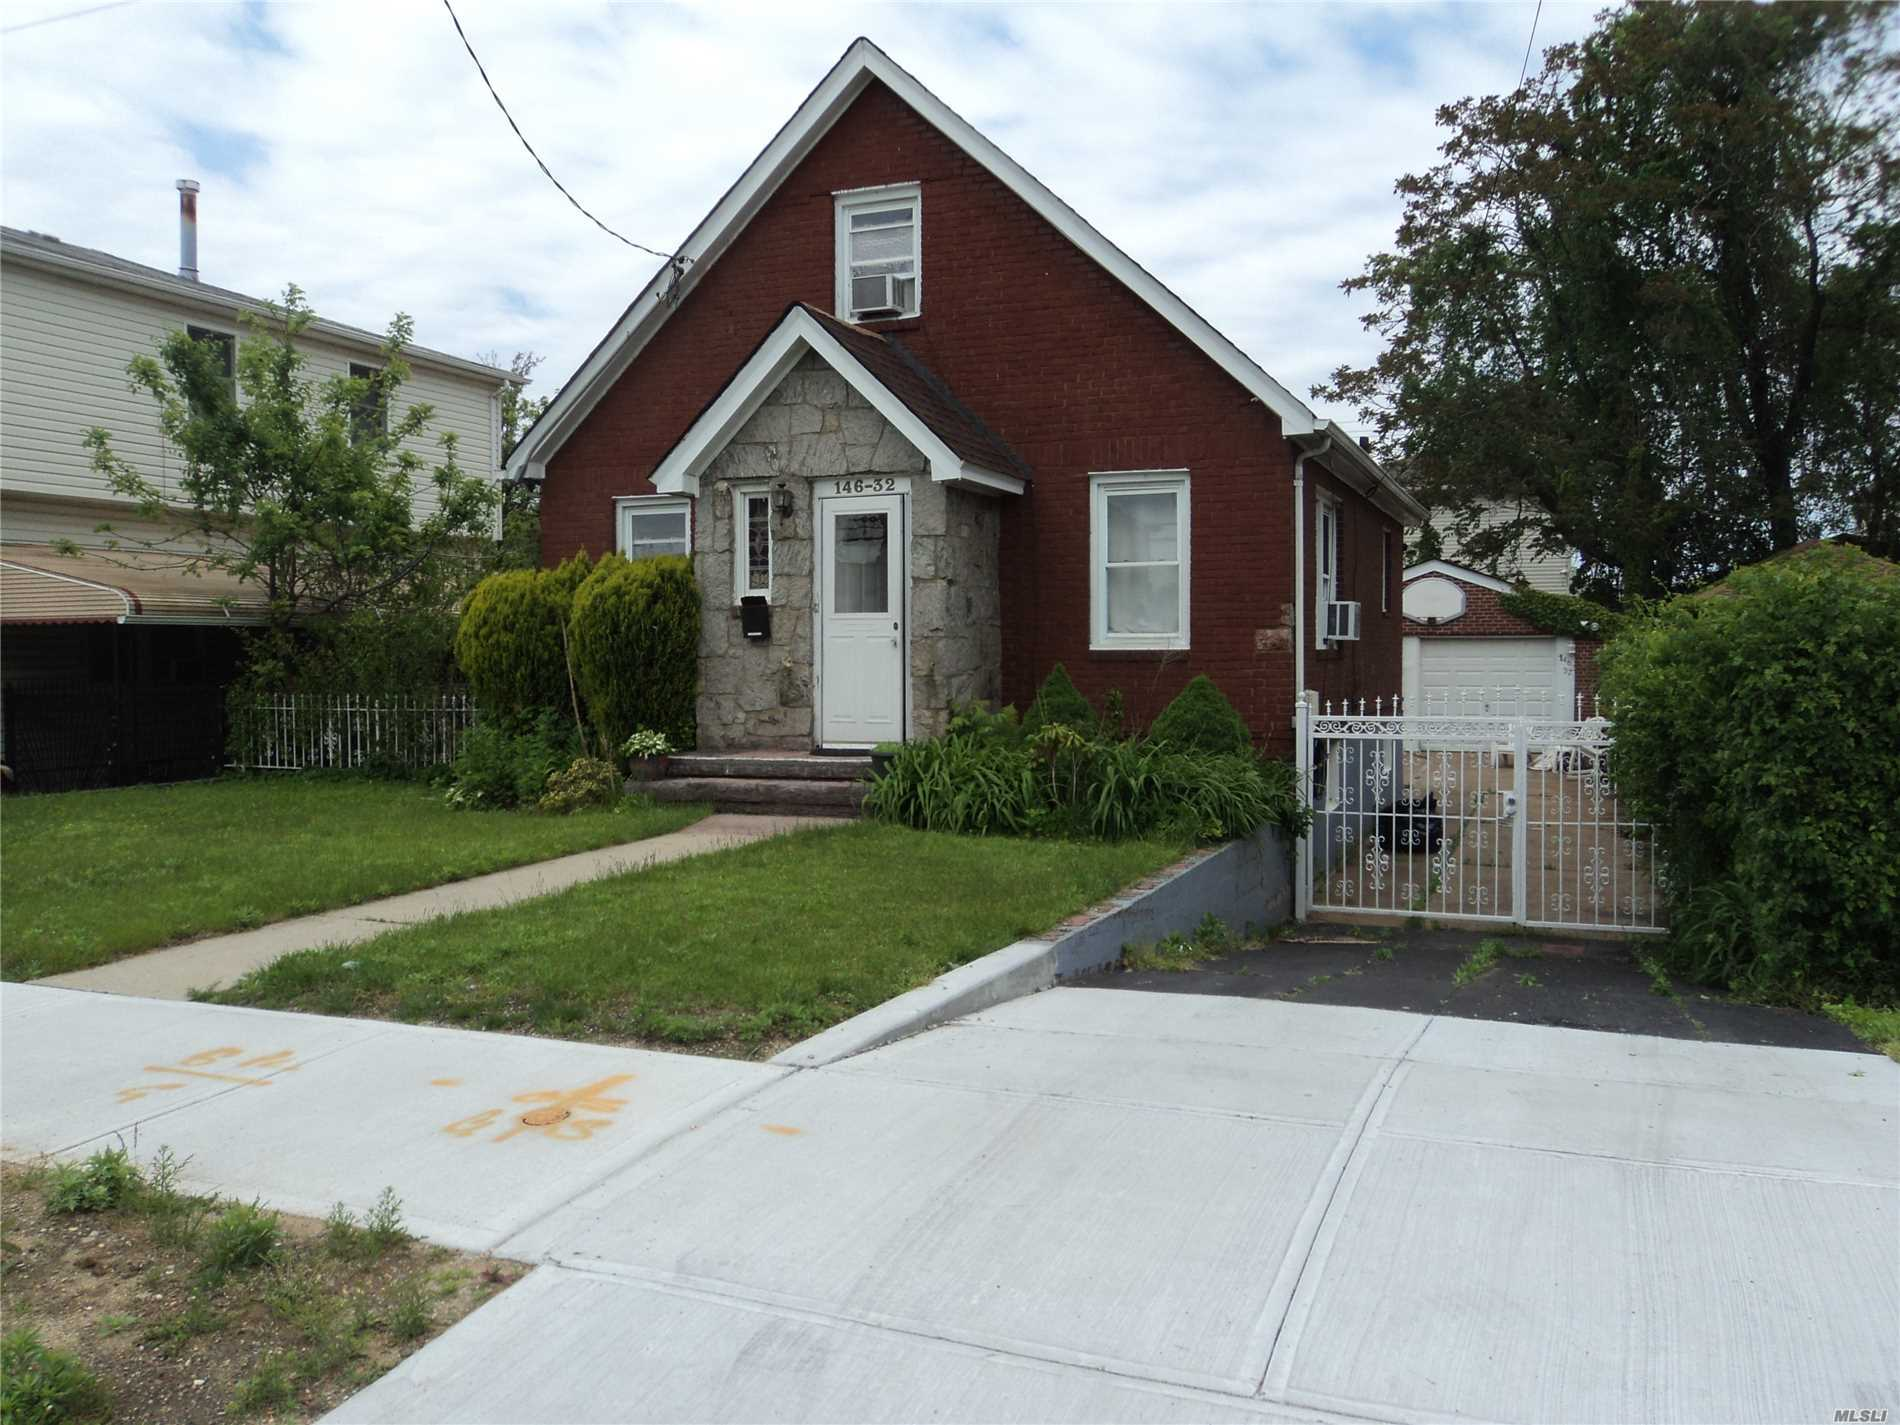 14632 229th St - Springfield Gdns, New York